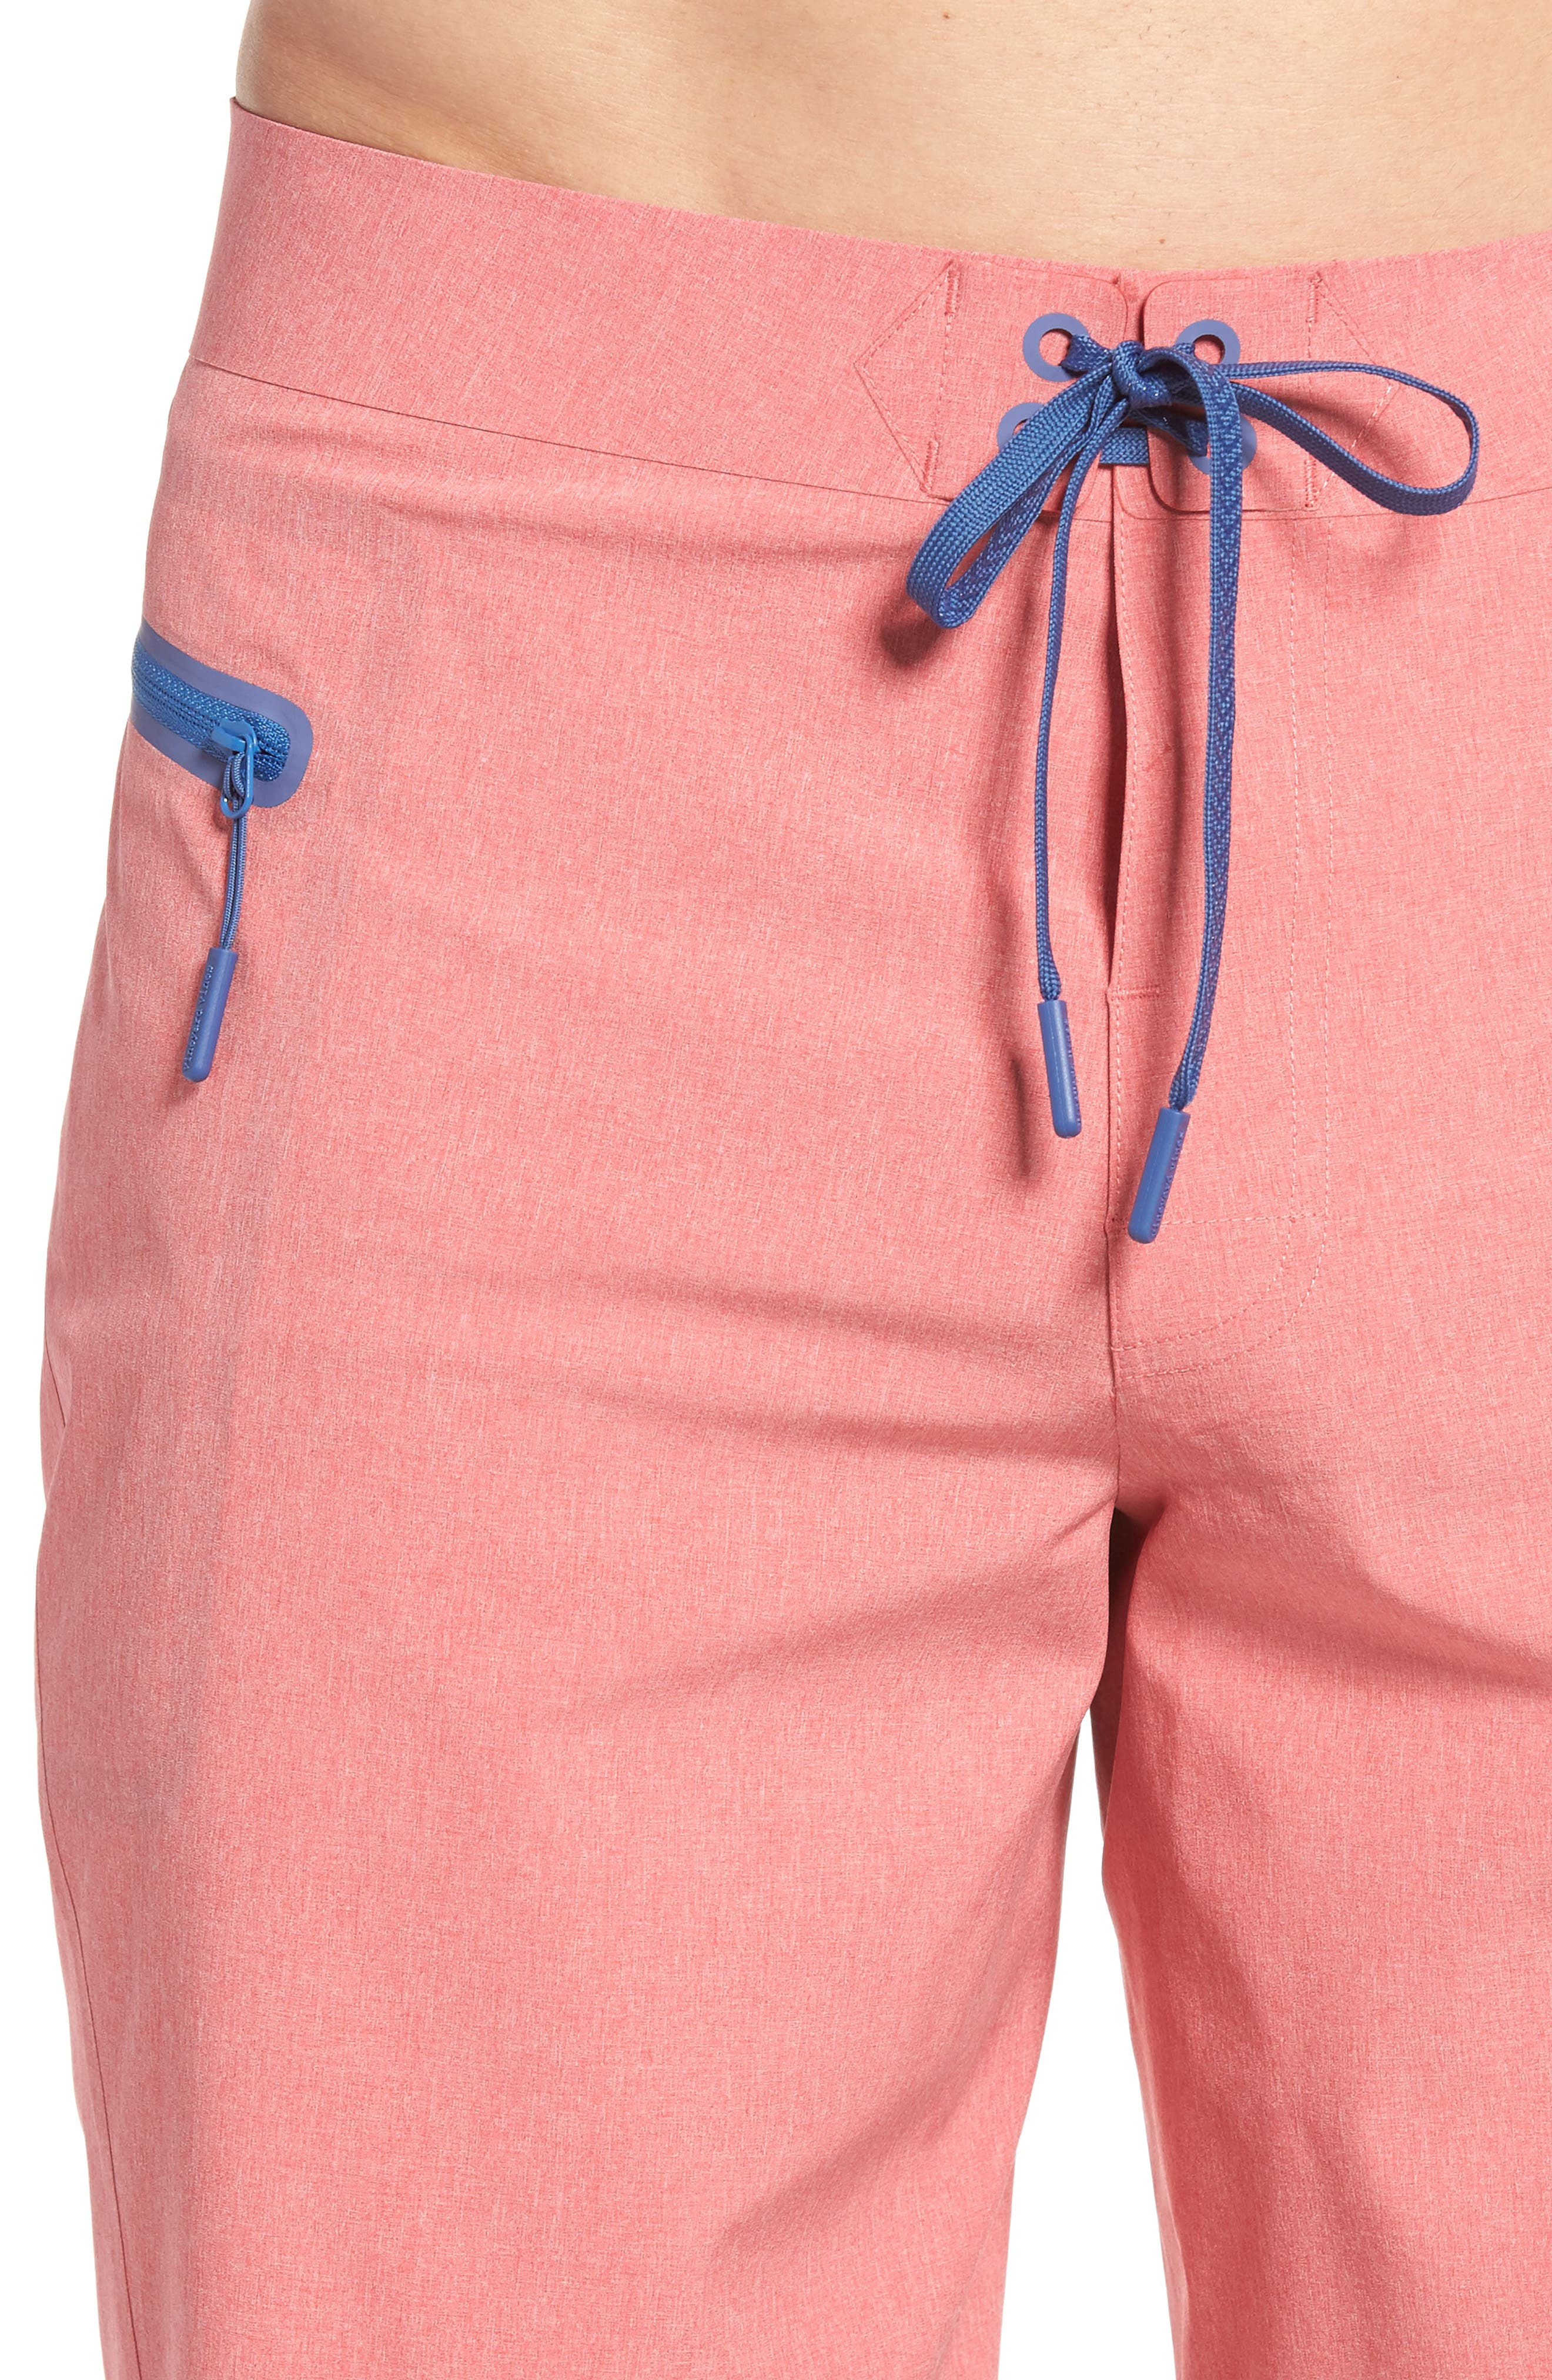 Heather Stretch Board Shorts,                             Alternate thumbnail 16, color,